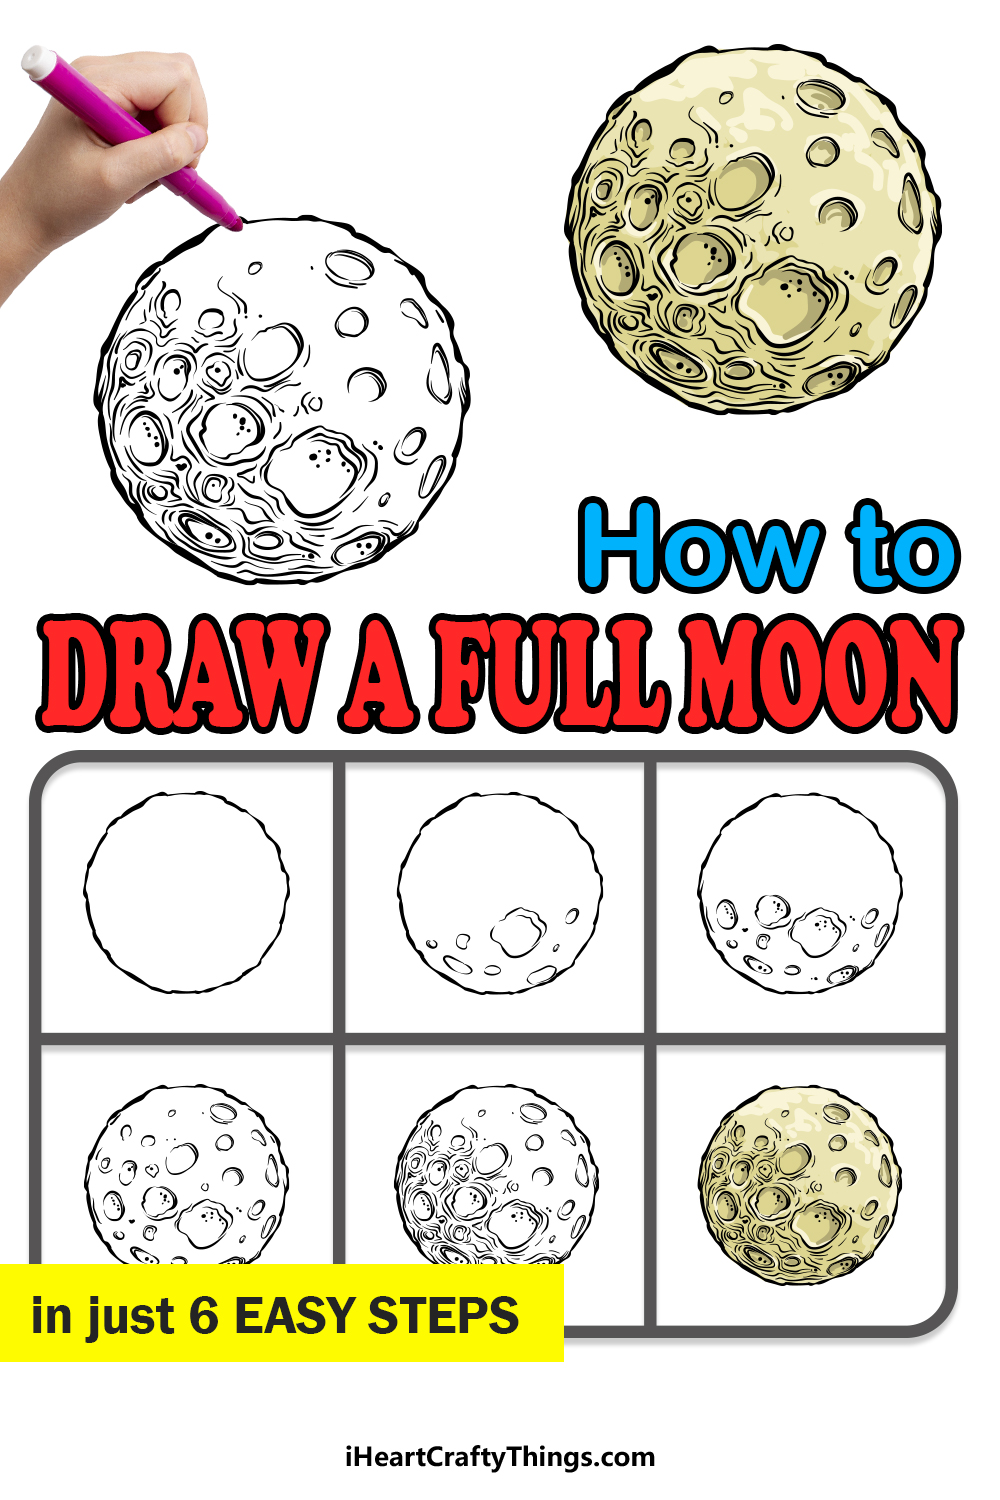 how to draw a full moon in 6 easy steps